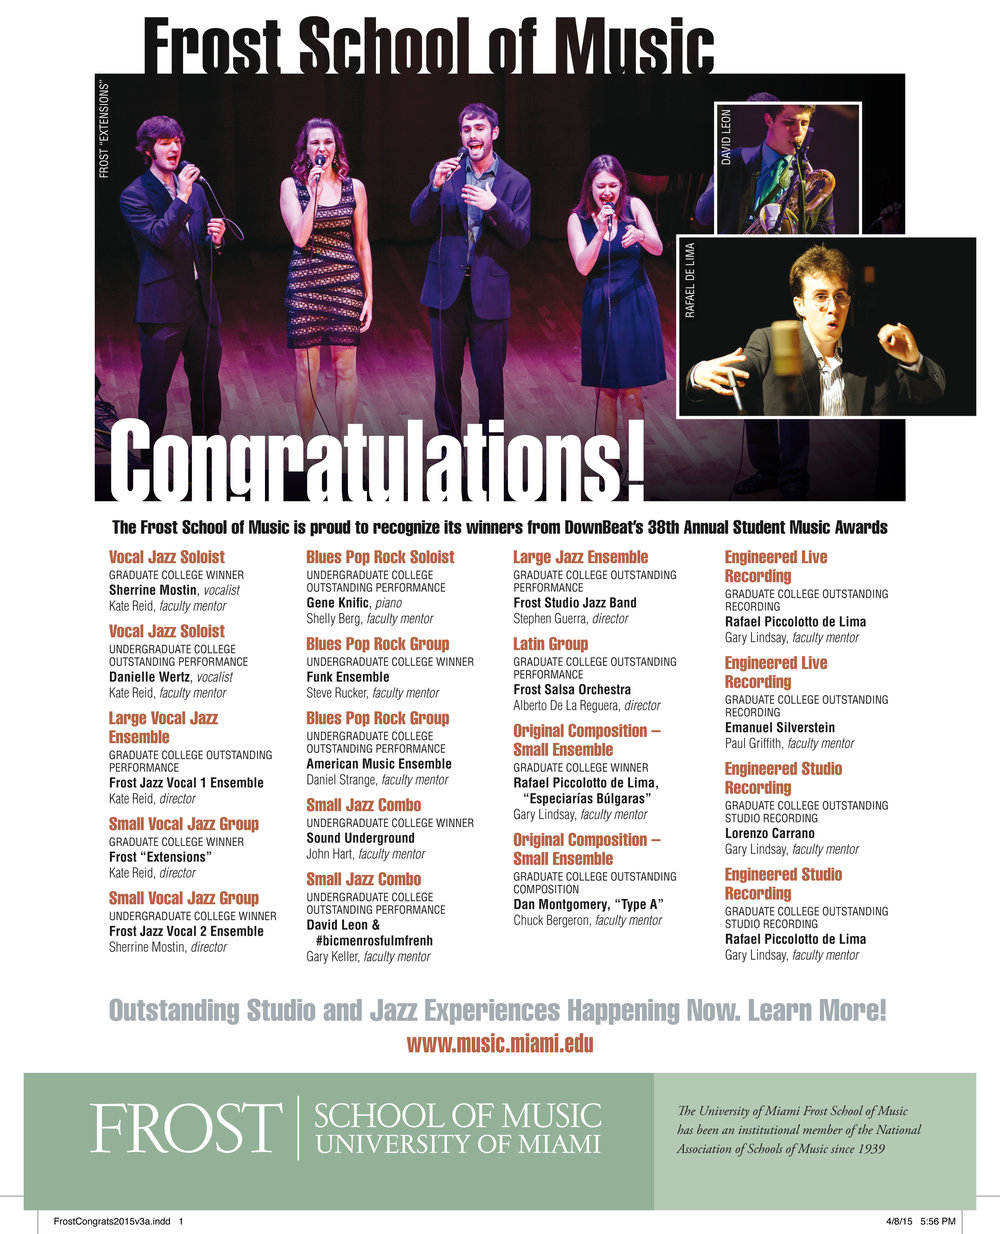 Downbeat Magazine, 2015.